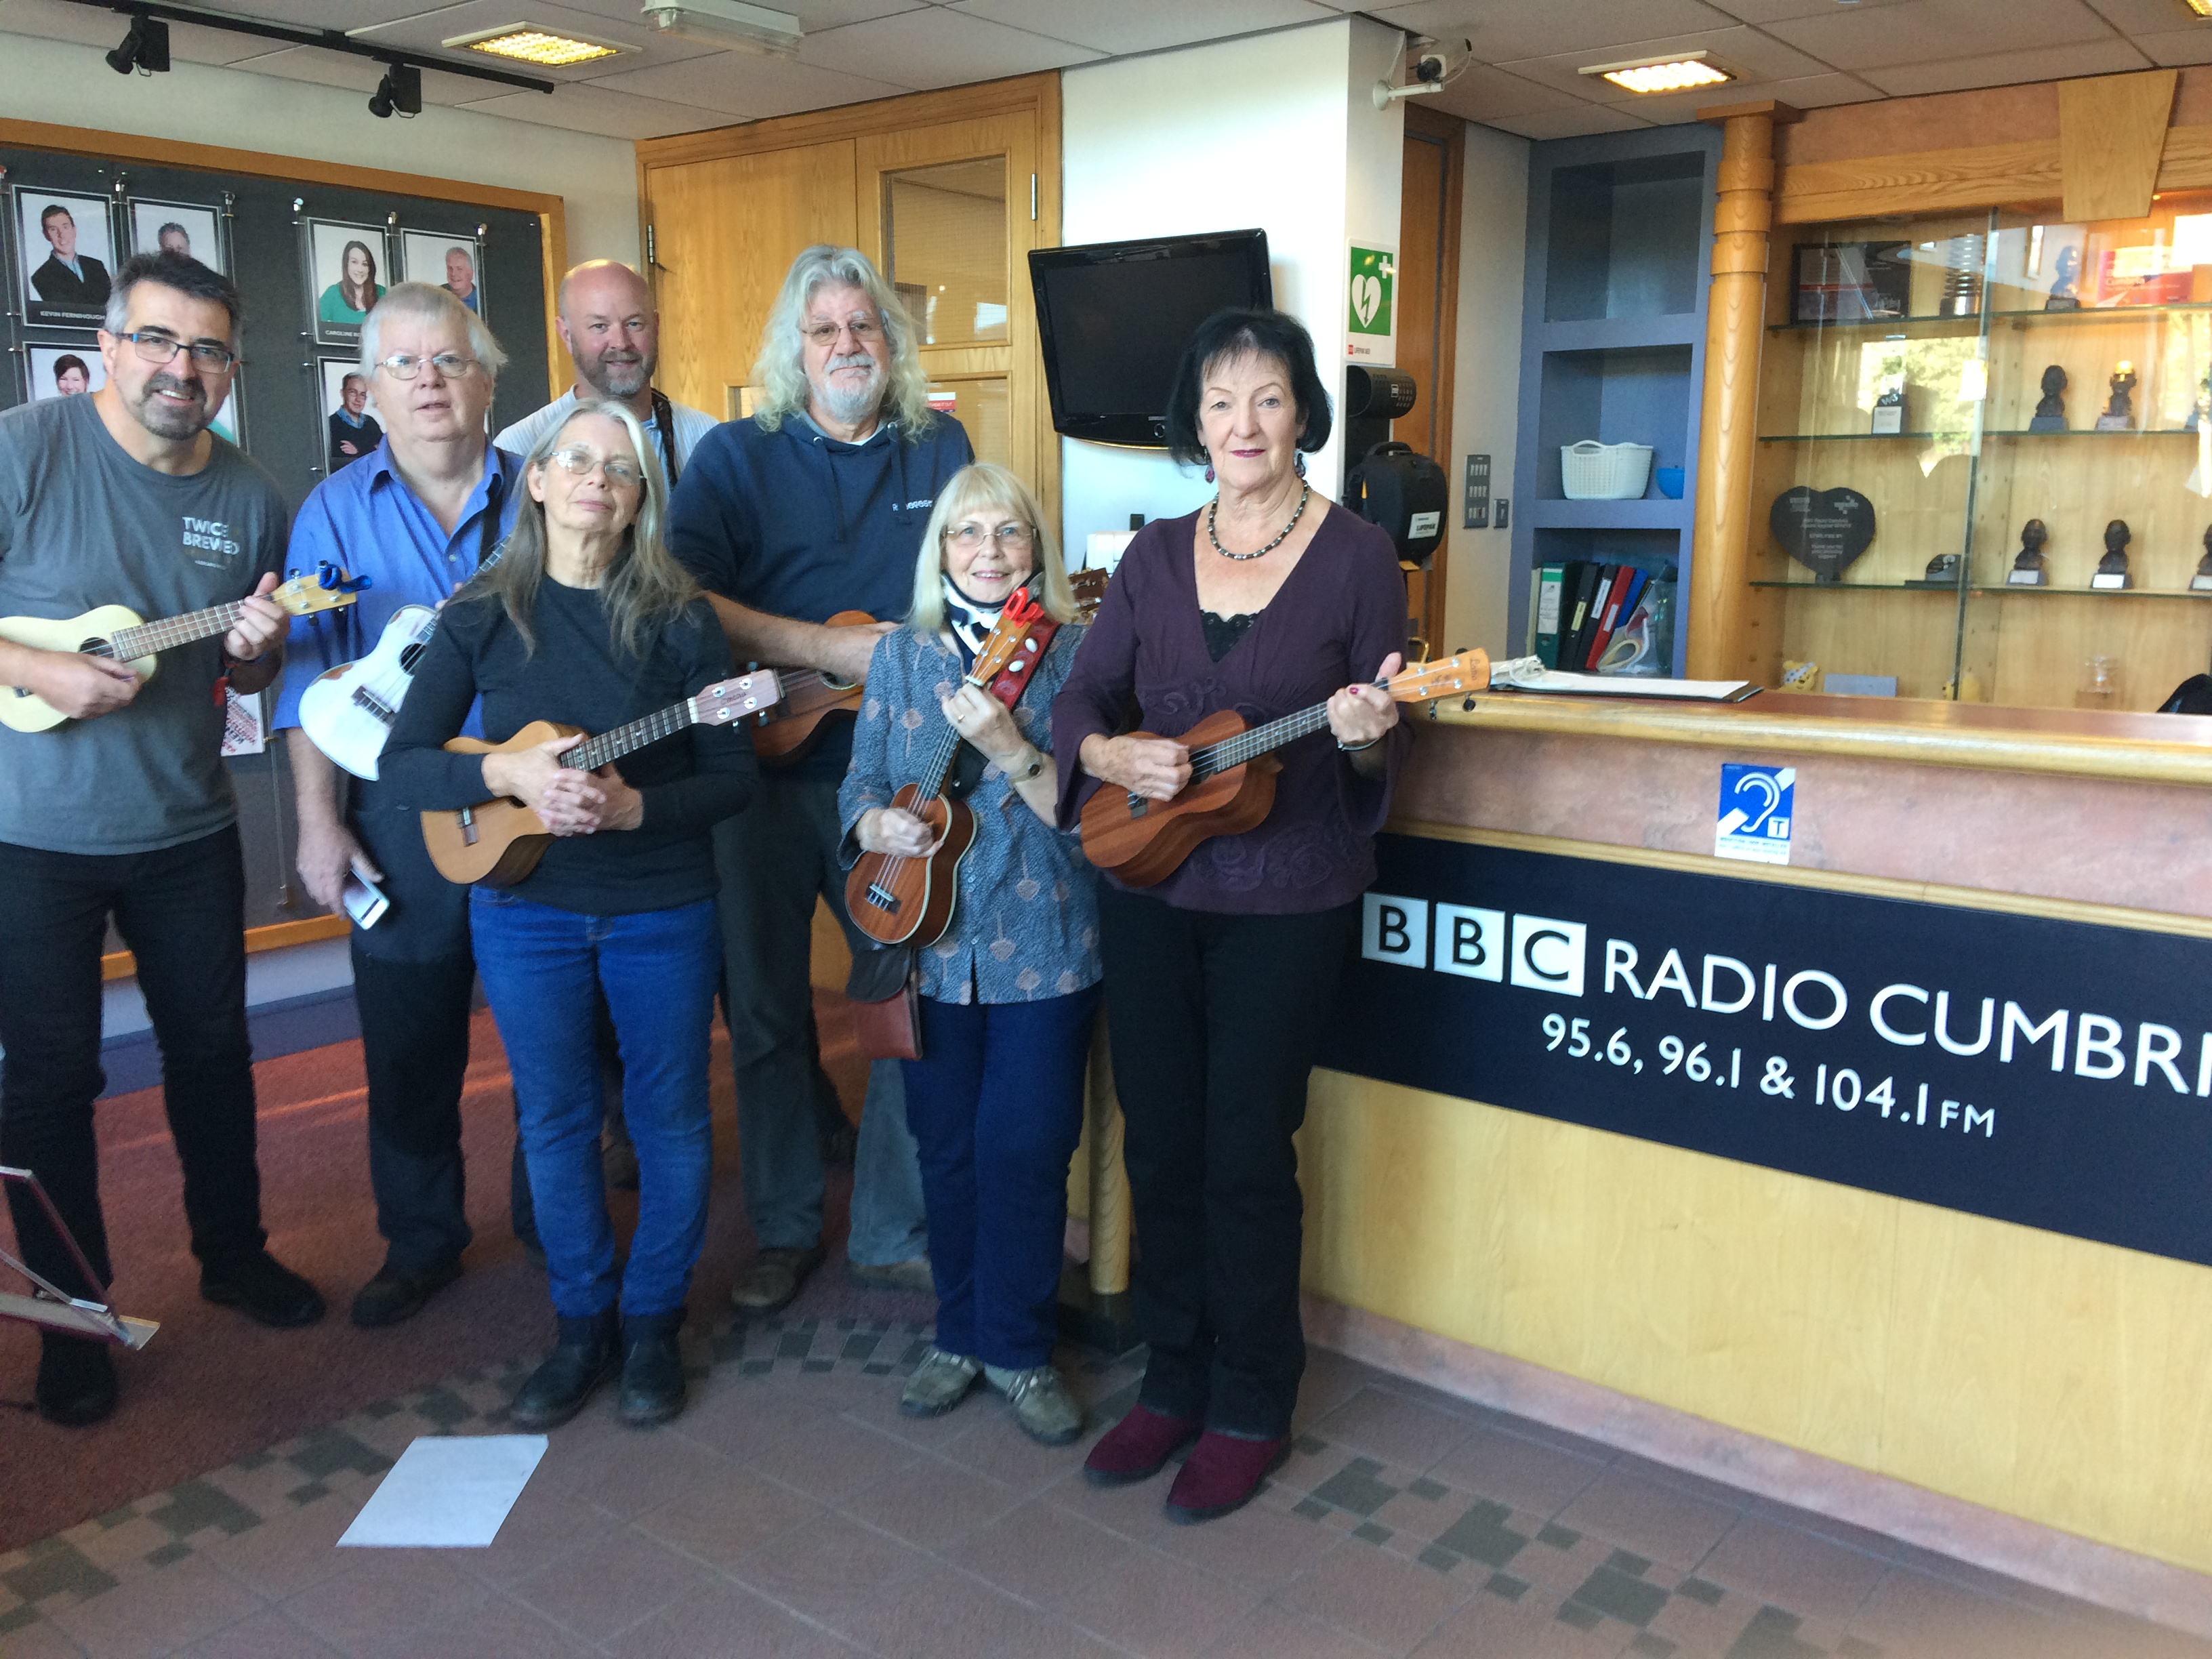 The D'Ukes Ukulele Club - Alternate Thursday Evenings